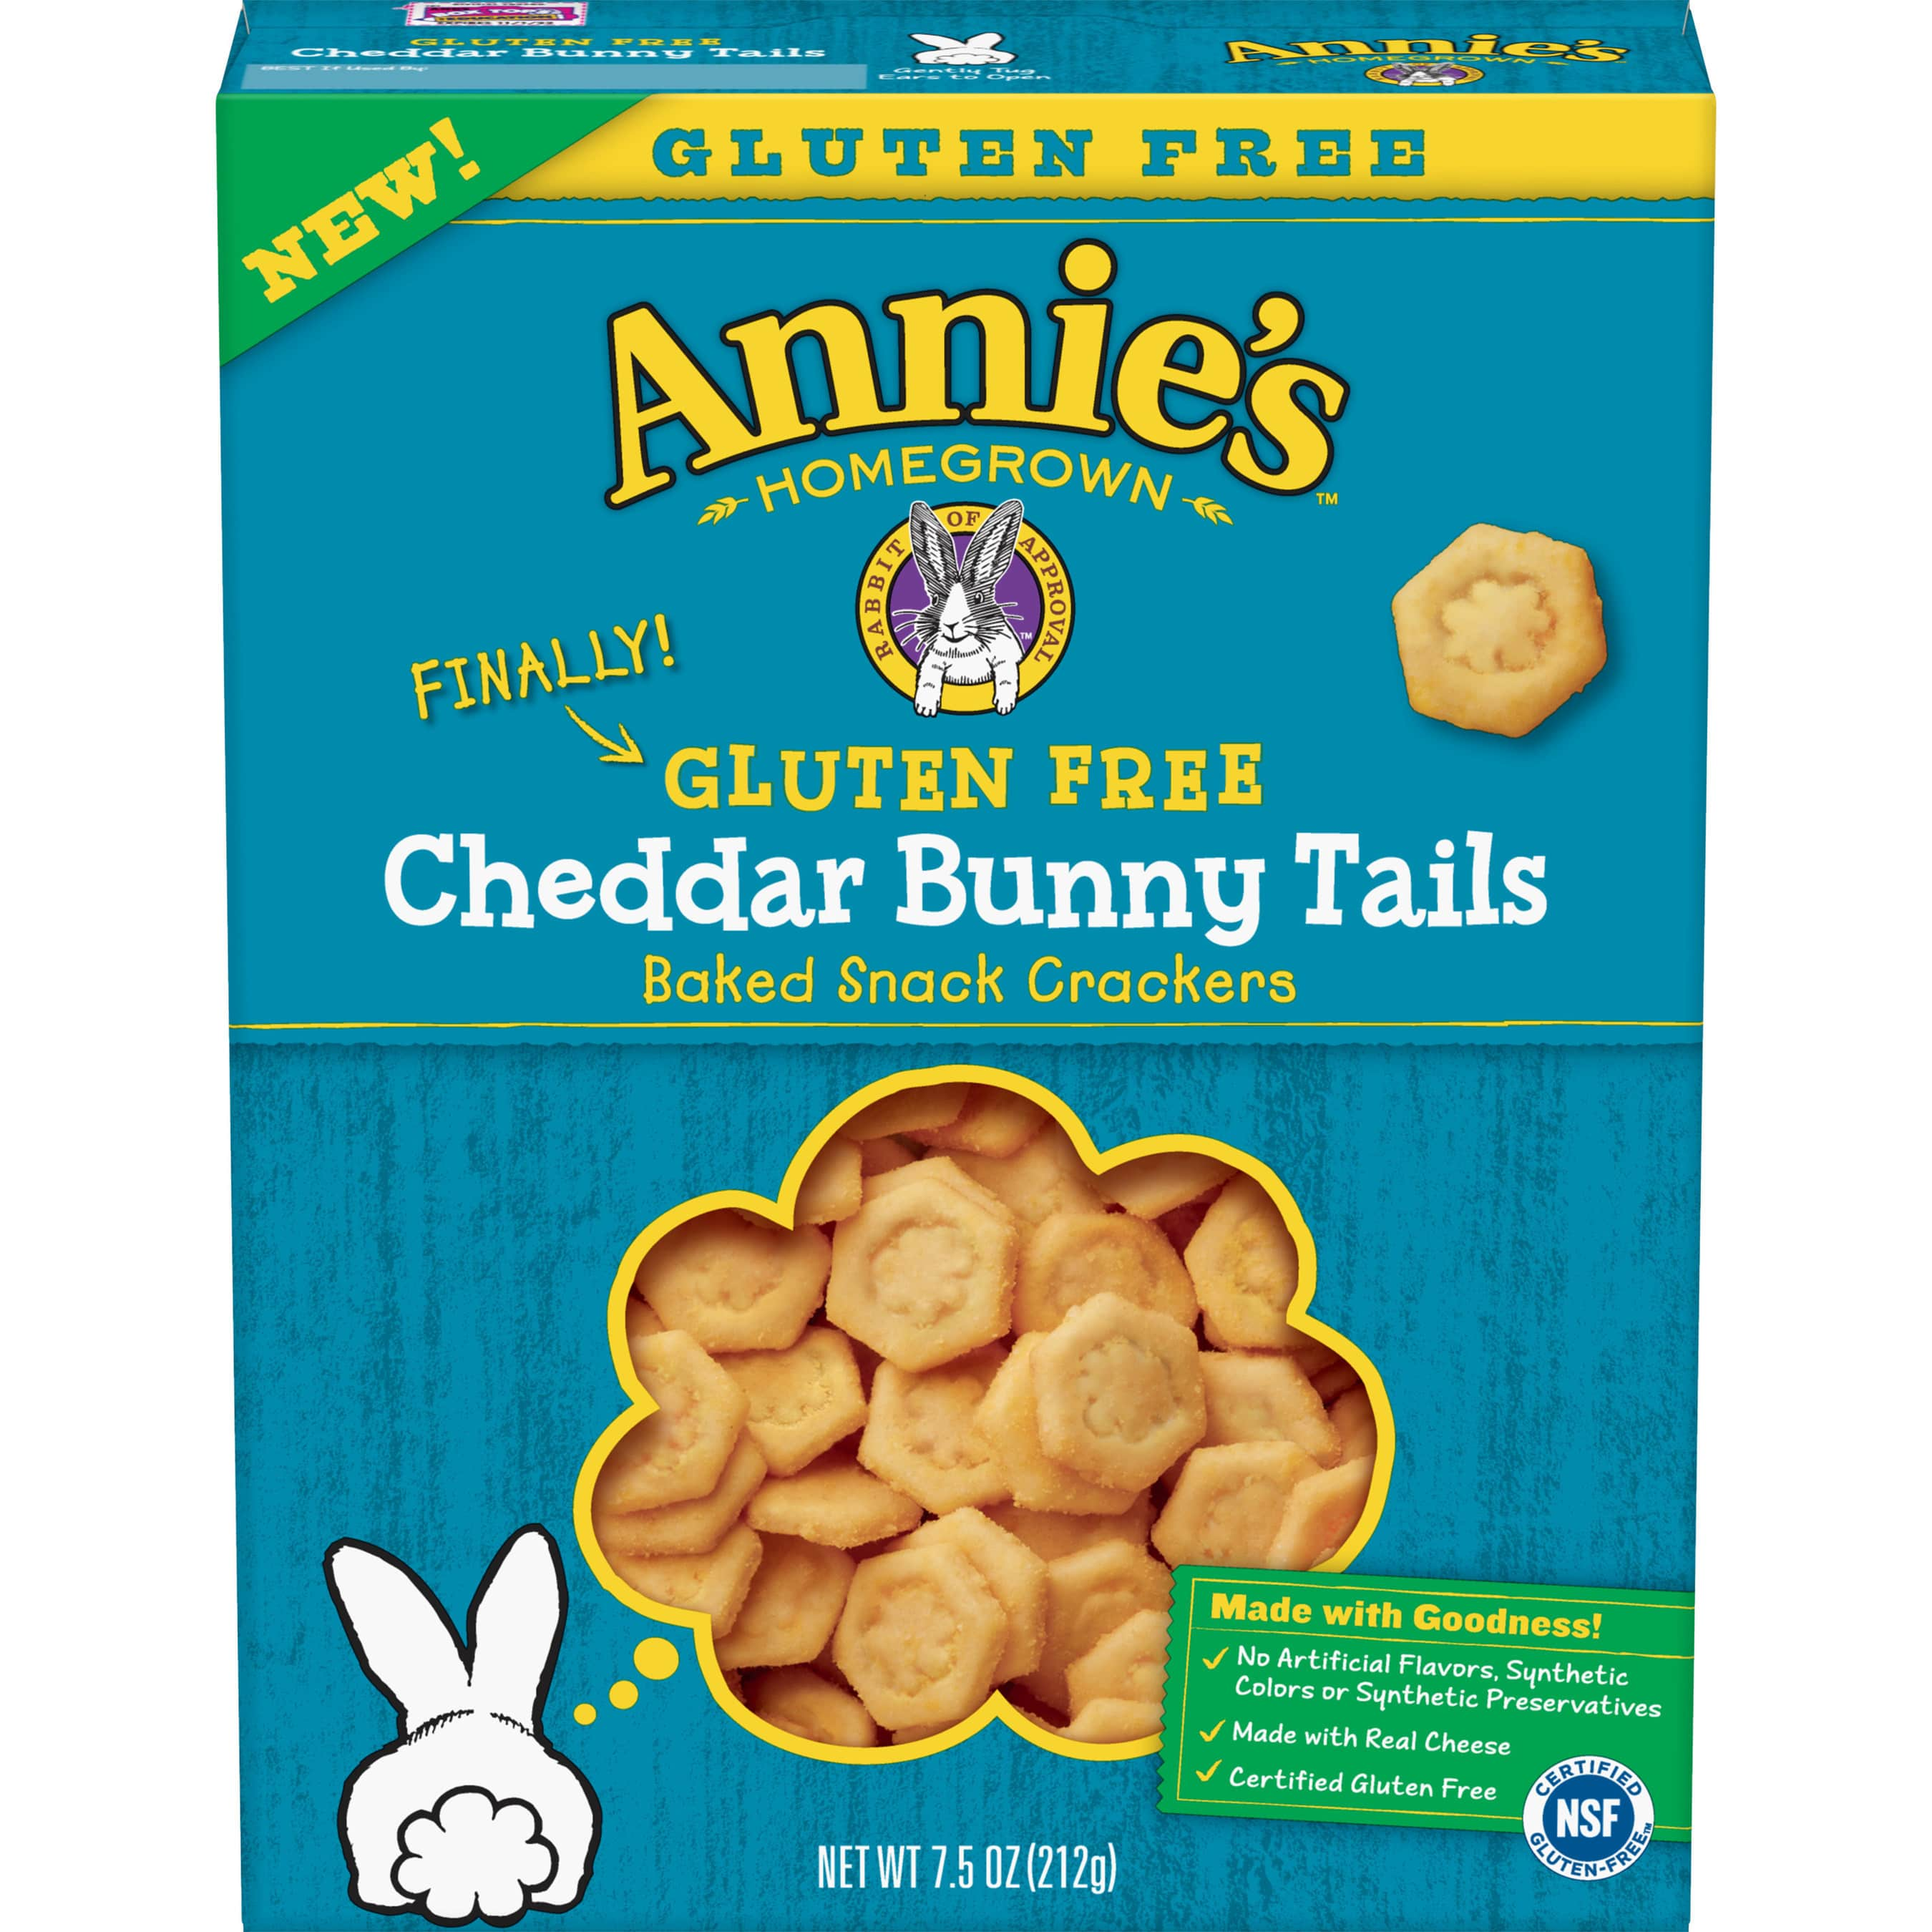 Annie's Launches Gluten Free Cheddar Bunny Tails